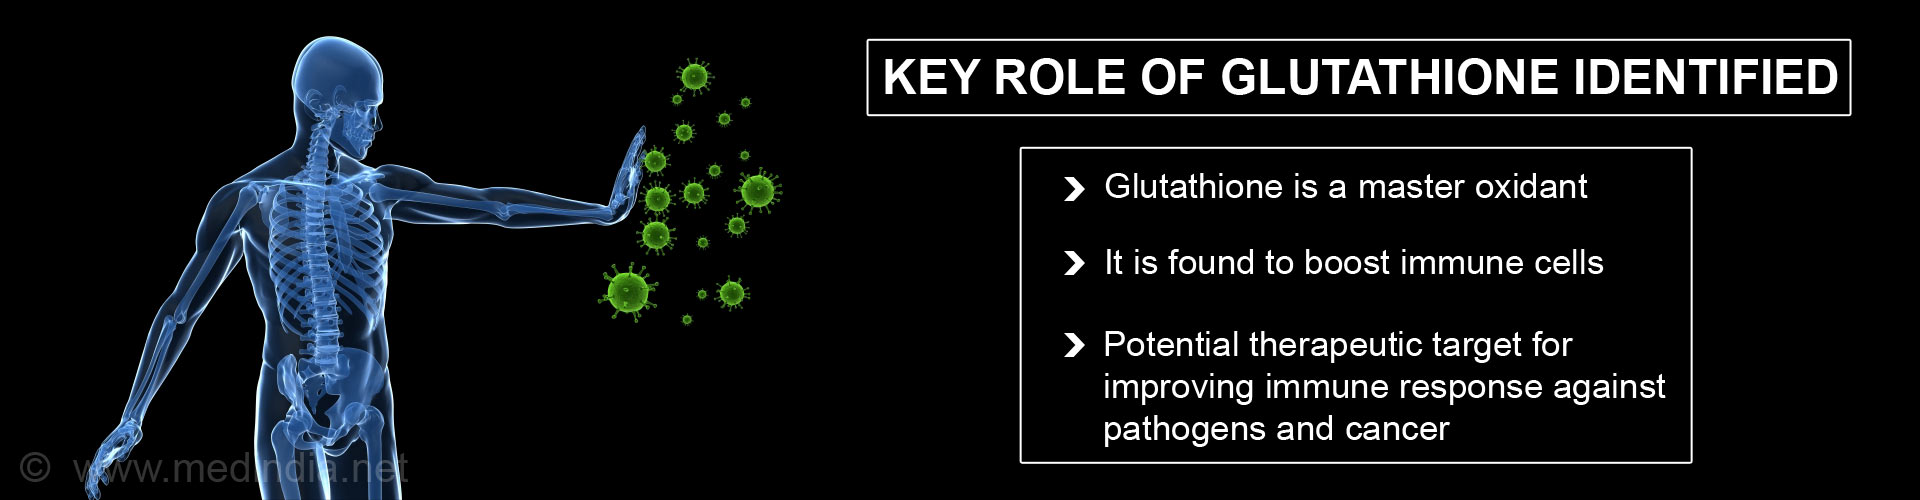 Key role of glutathione identified - Glutathione is a master oxidant -  It is found to boost immune cells - Potential therapeutic target for improving immune response against pathogens and cancer